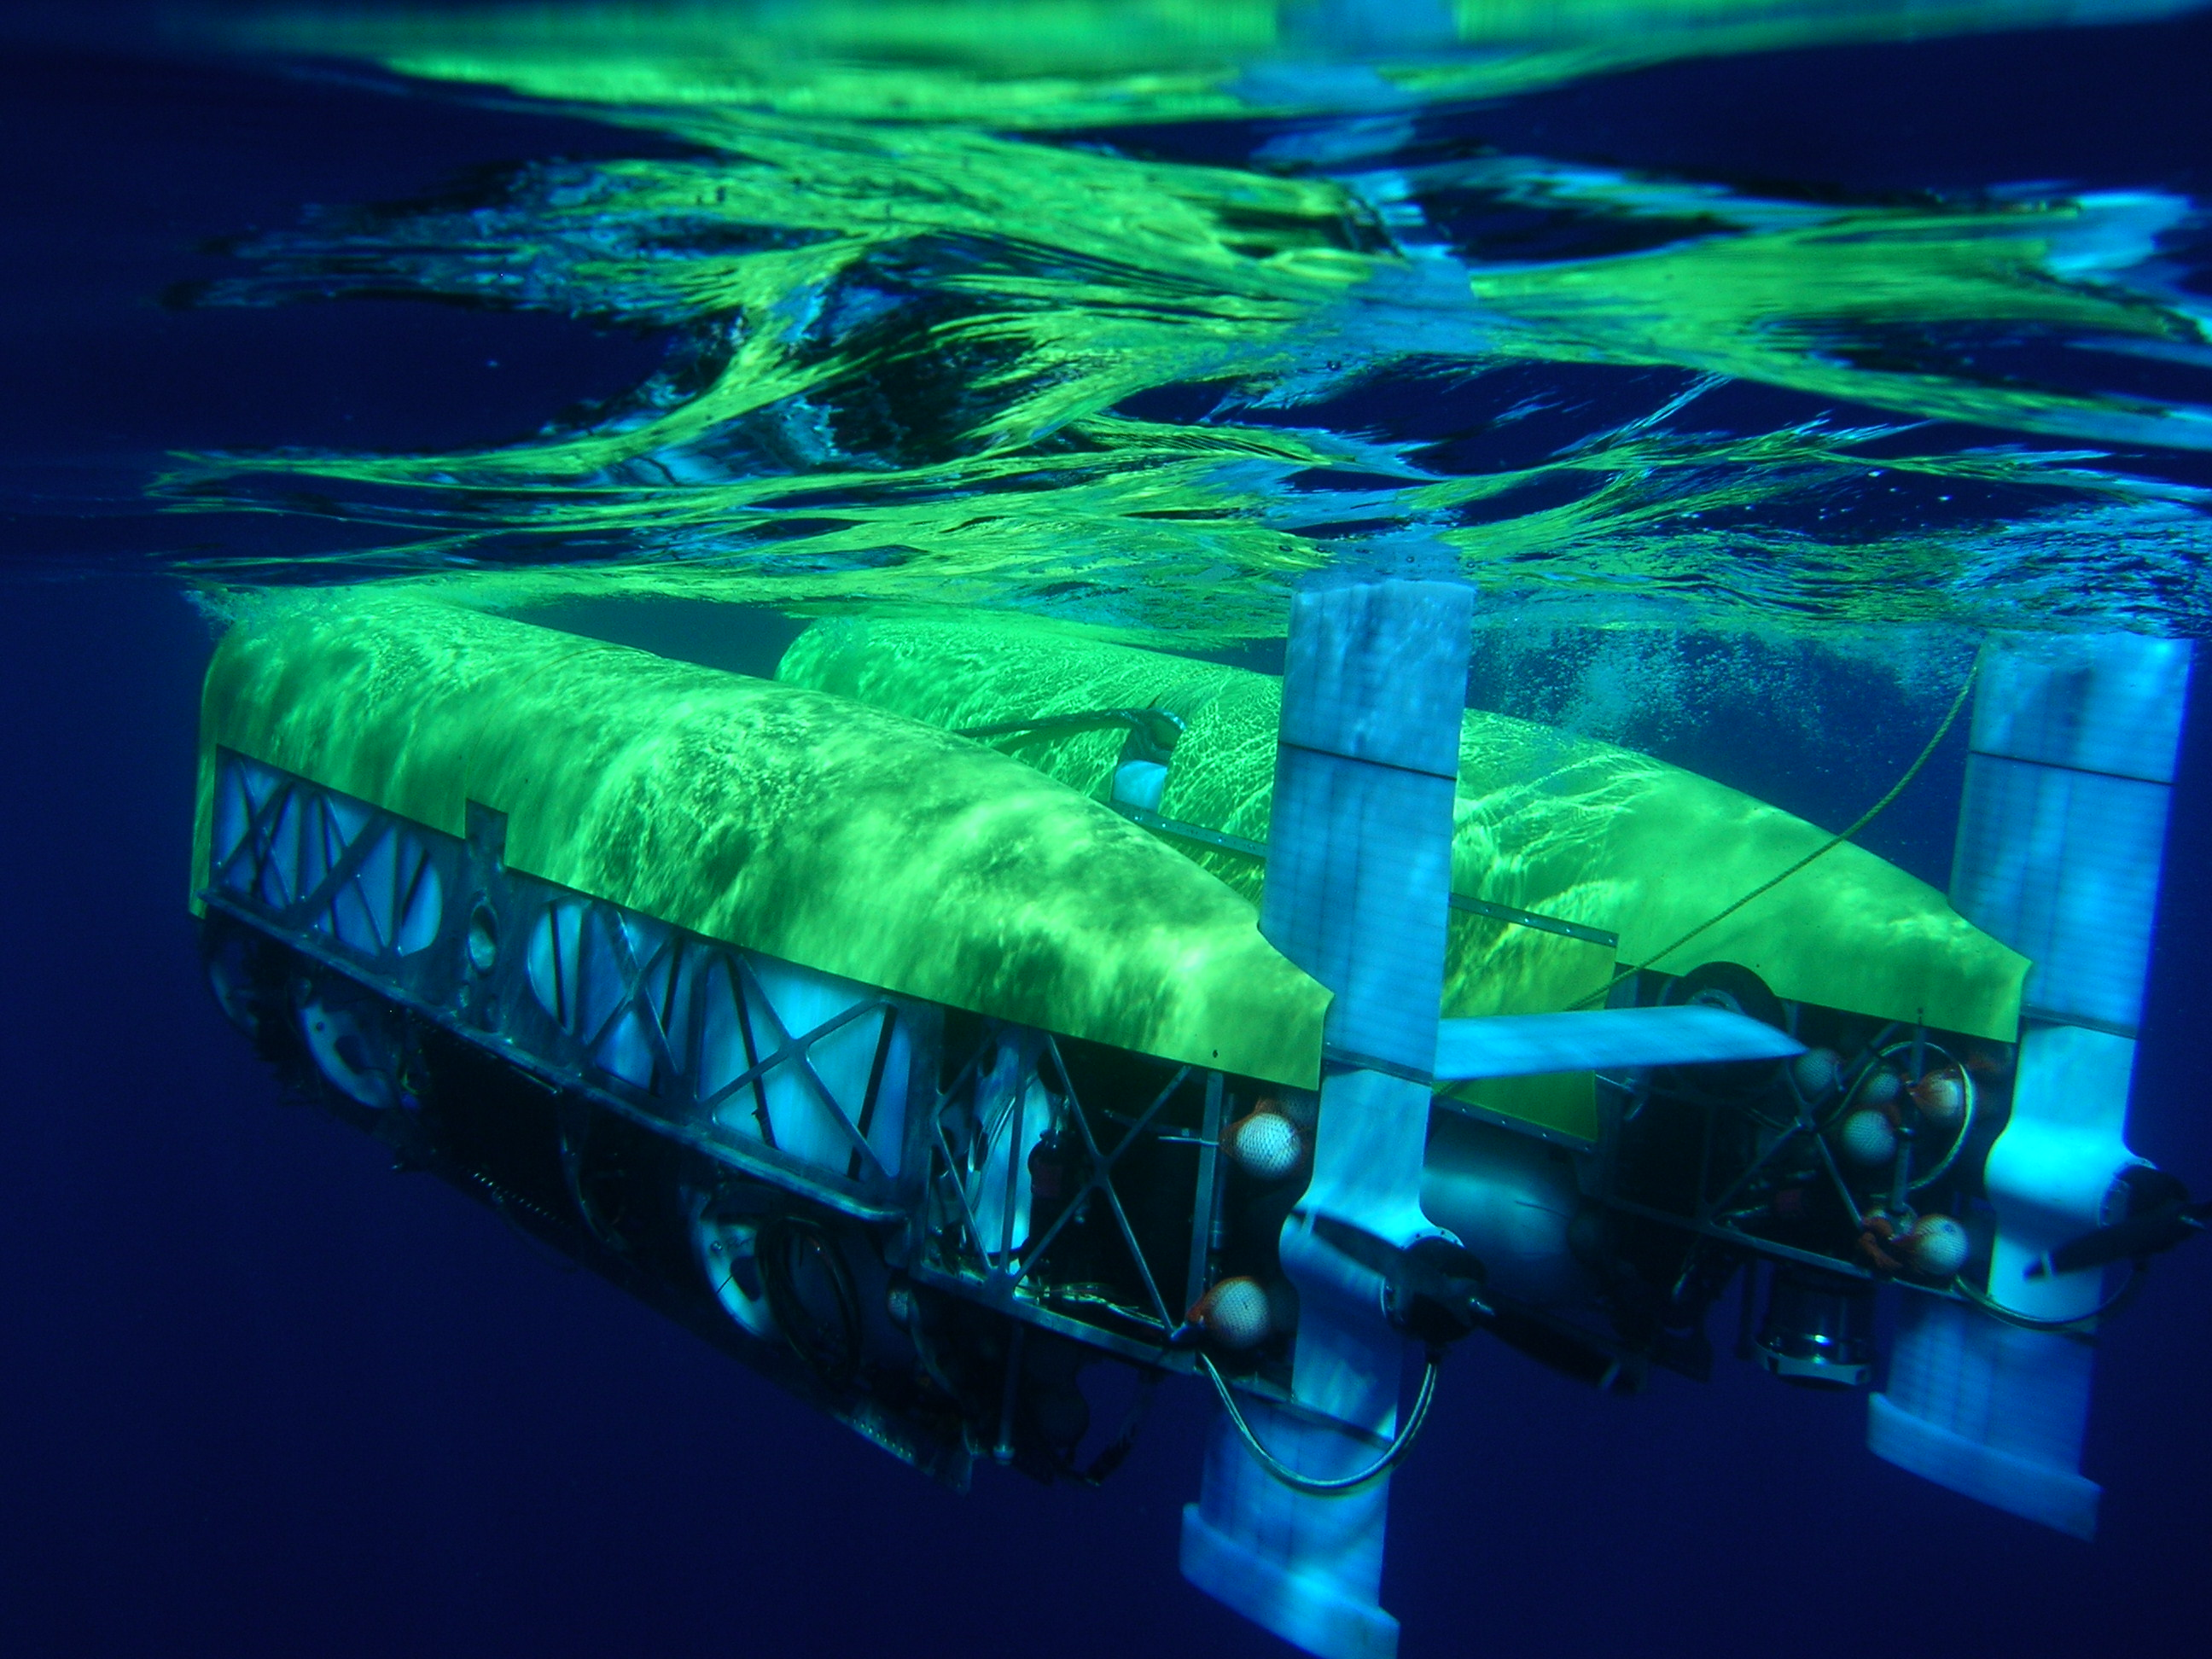 Developing Tools for Deep-Sea Research